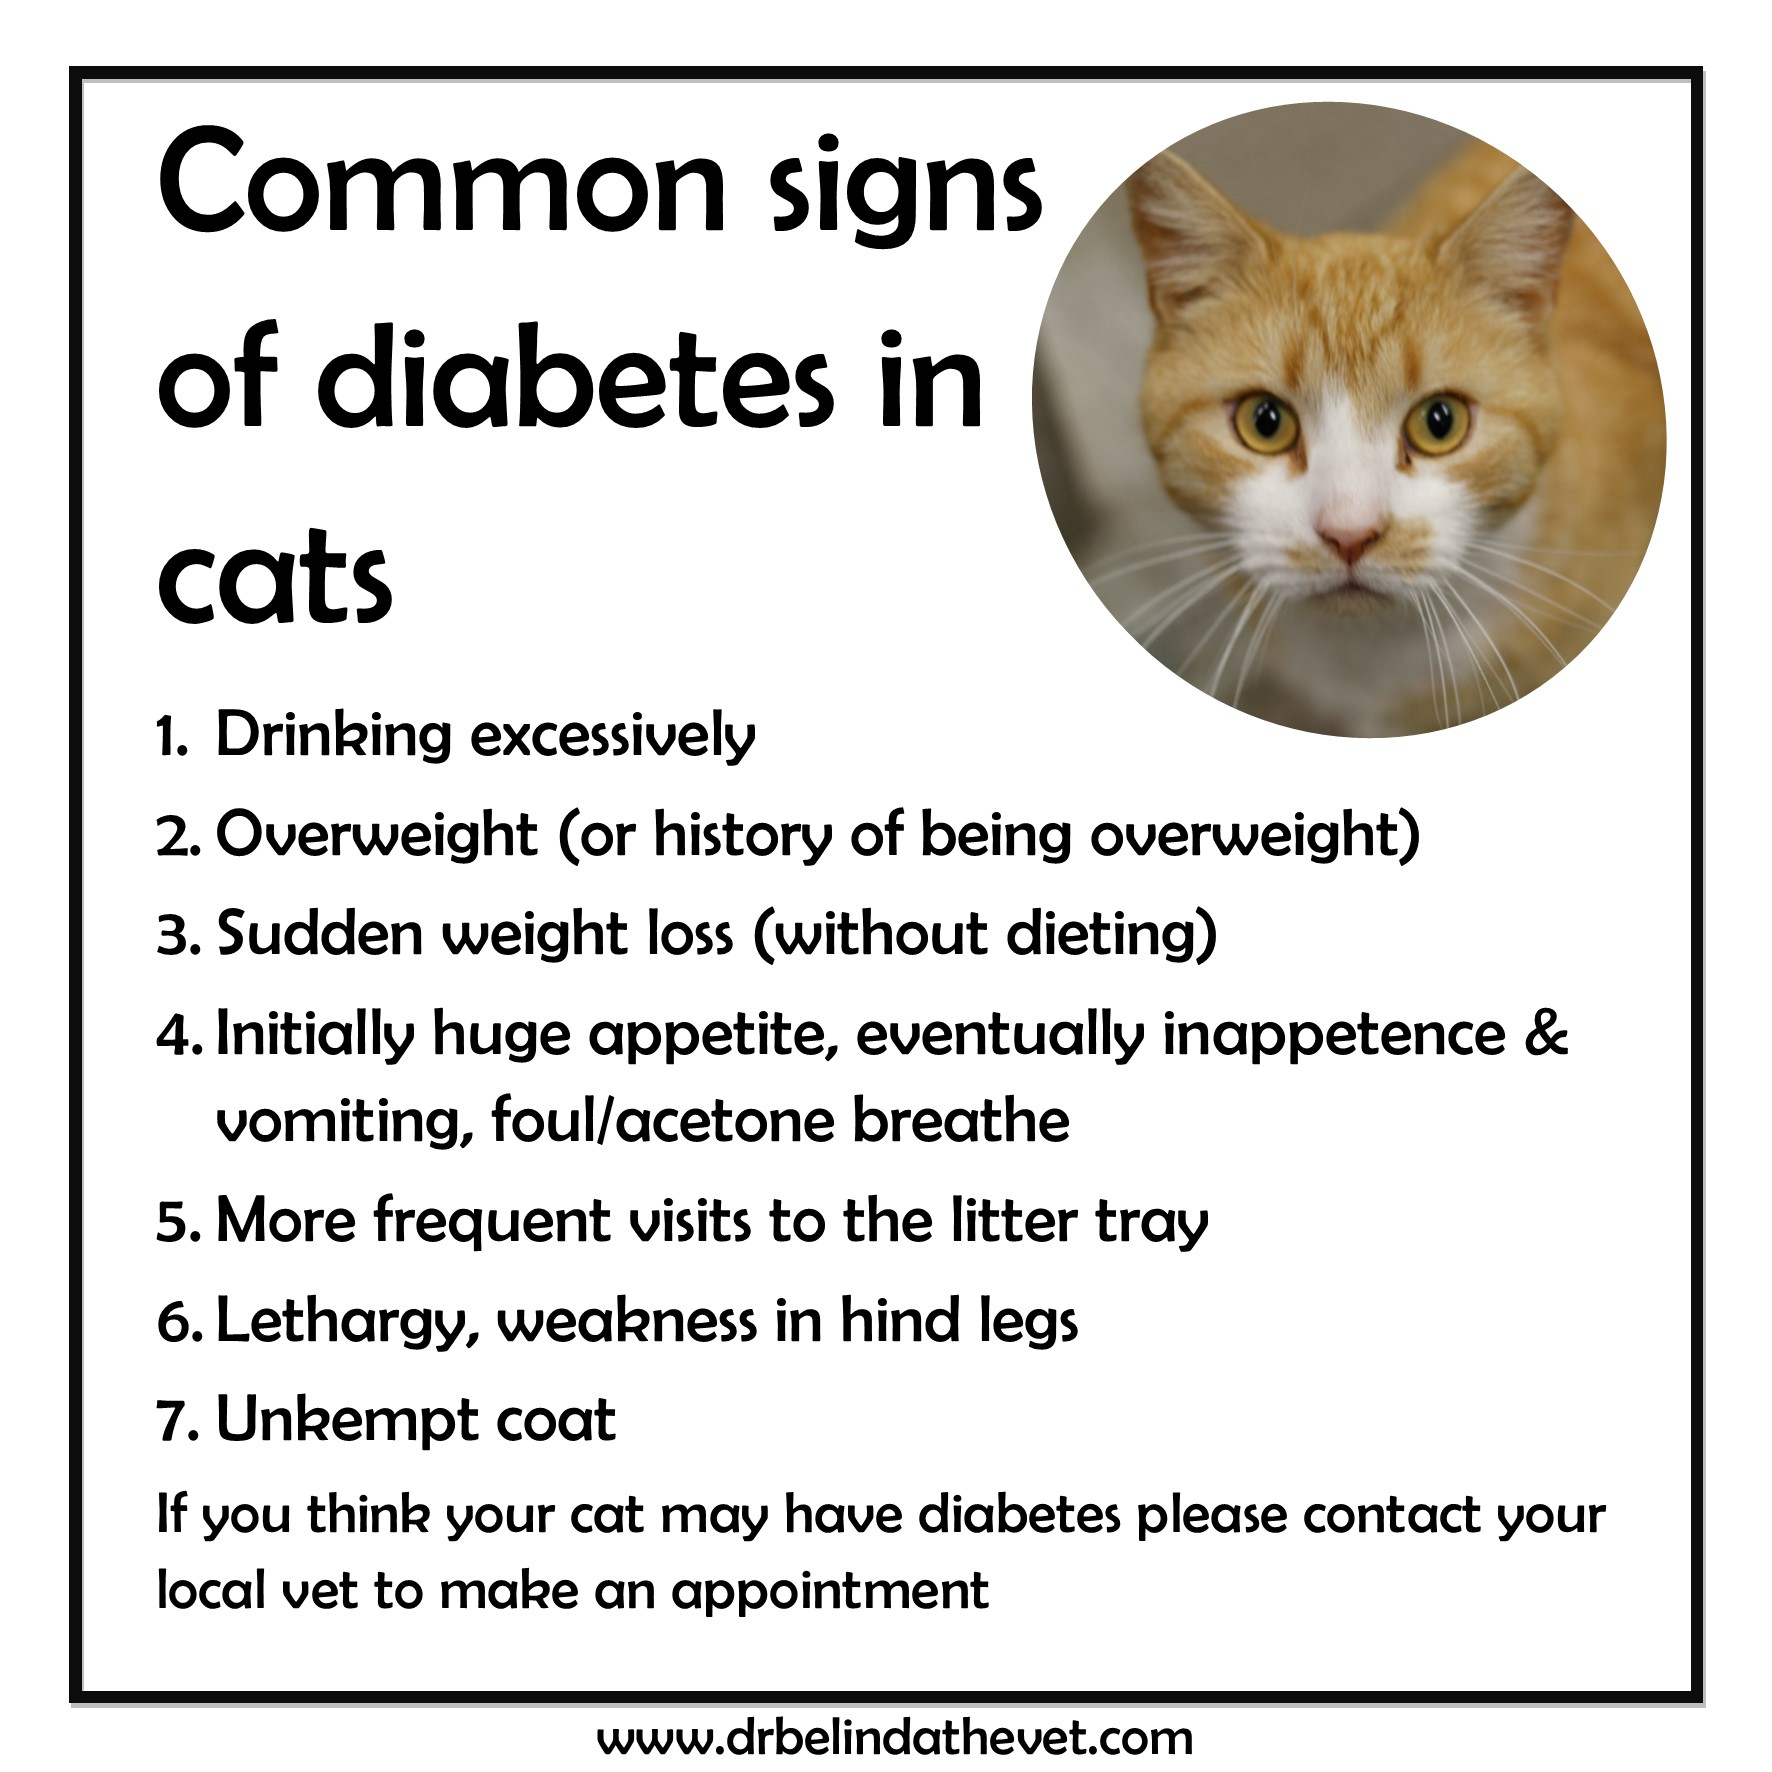 Signs your cat may have diabetes